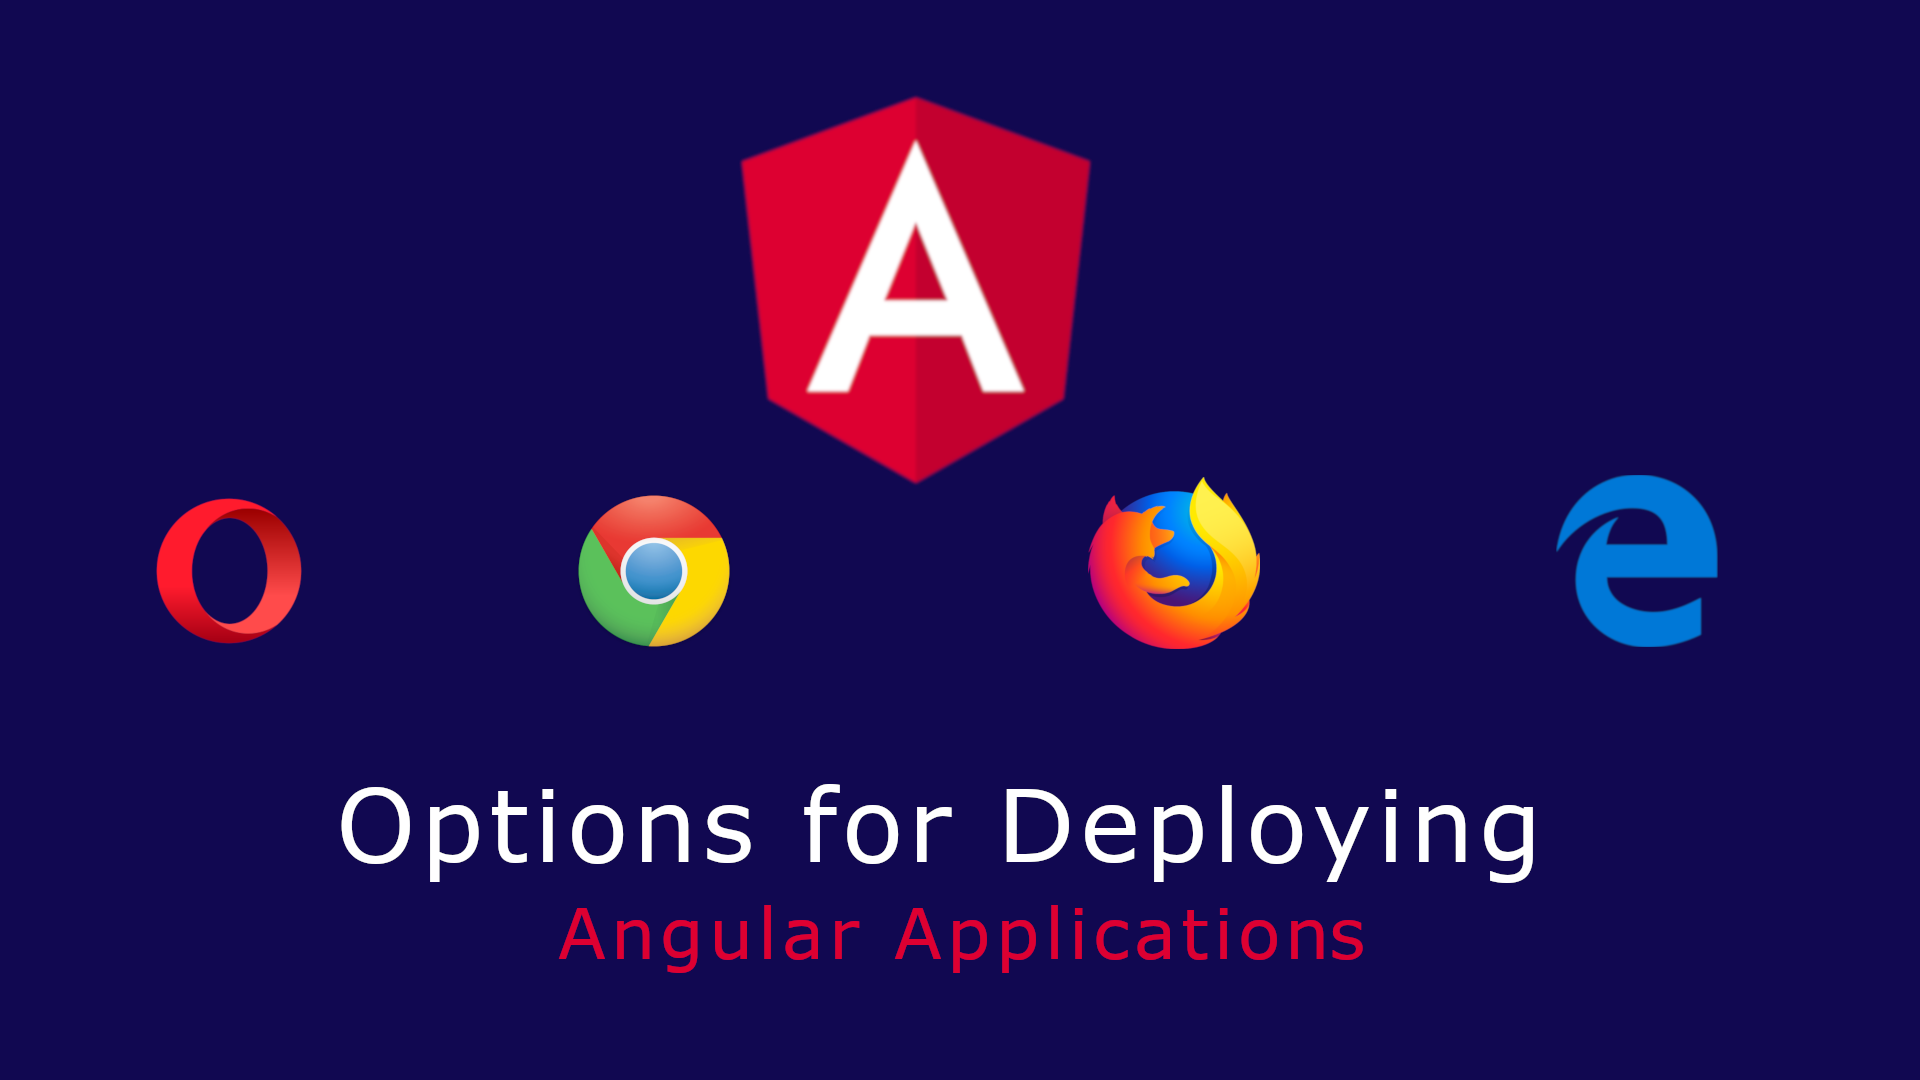 Options for Deploying Angular Apps